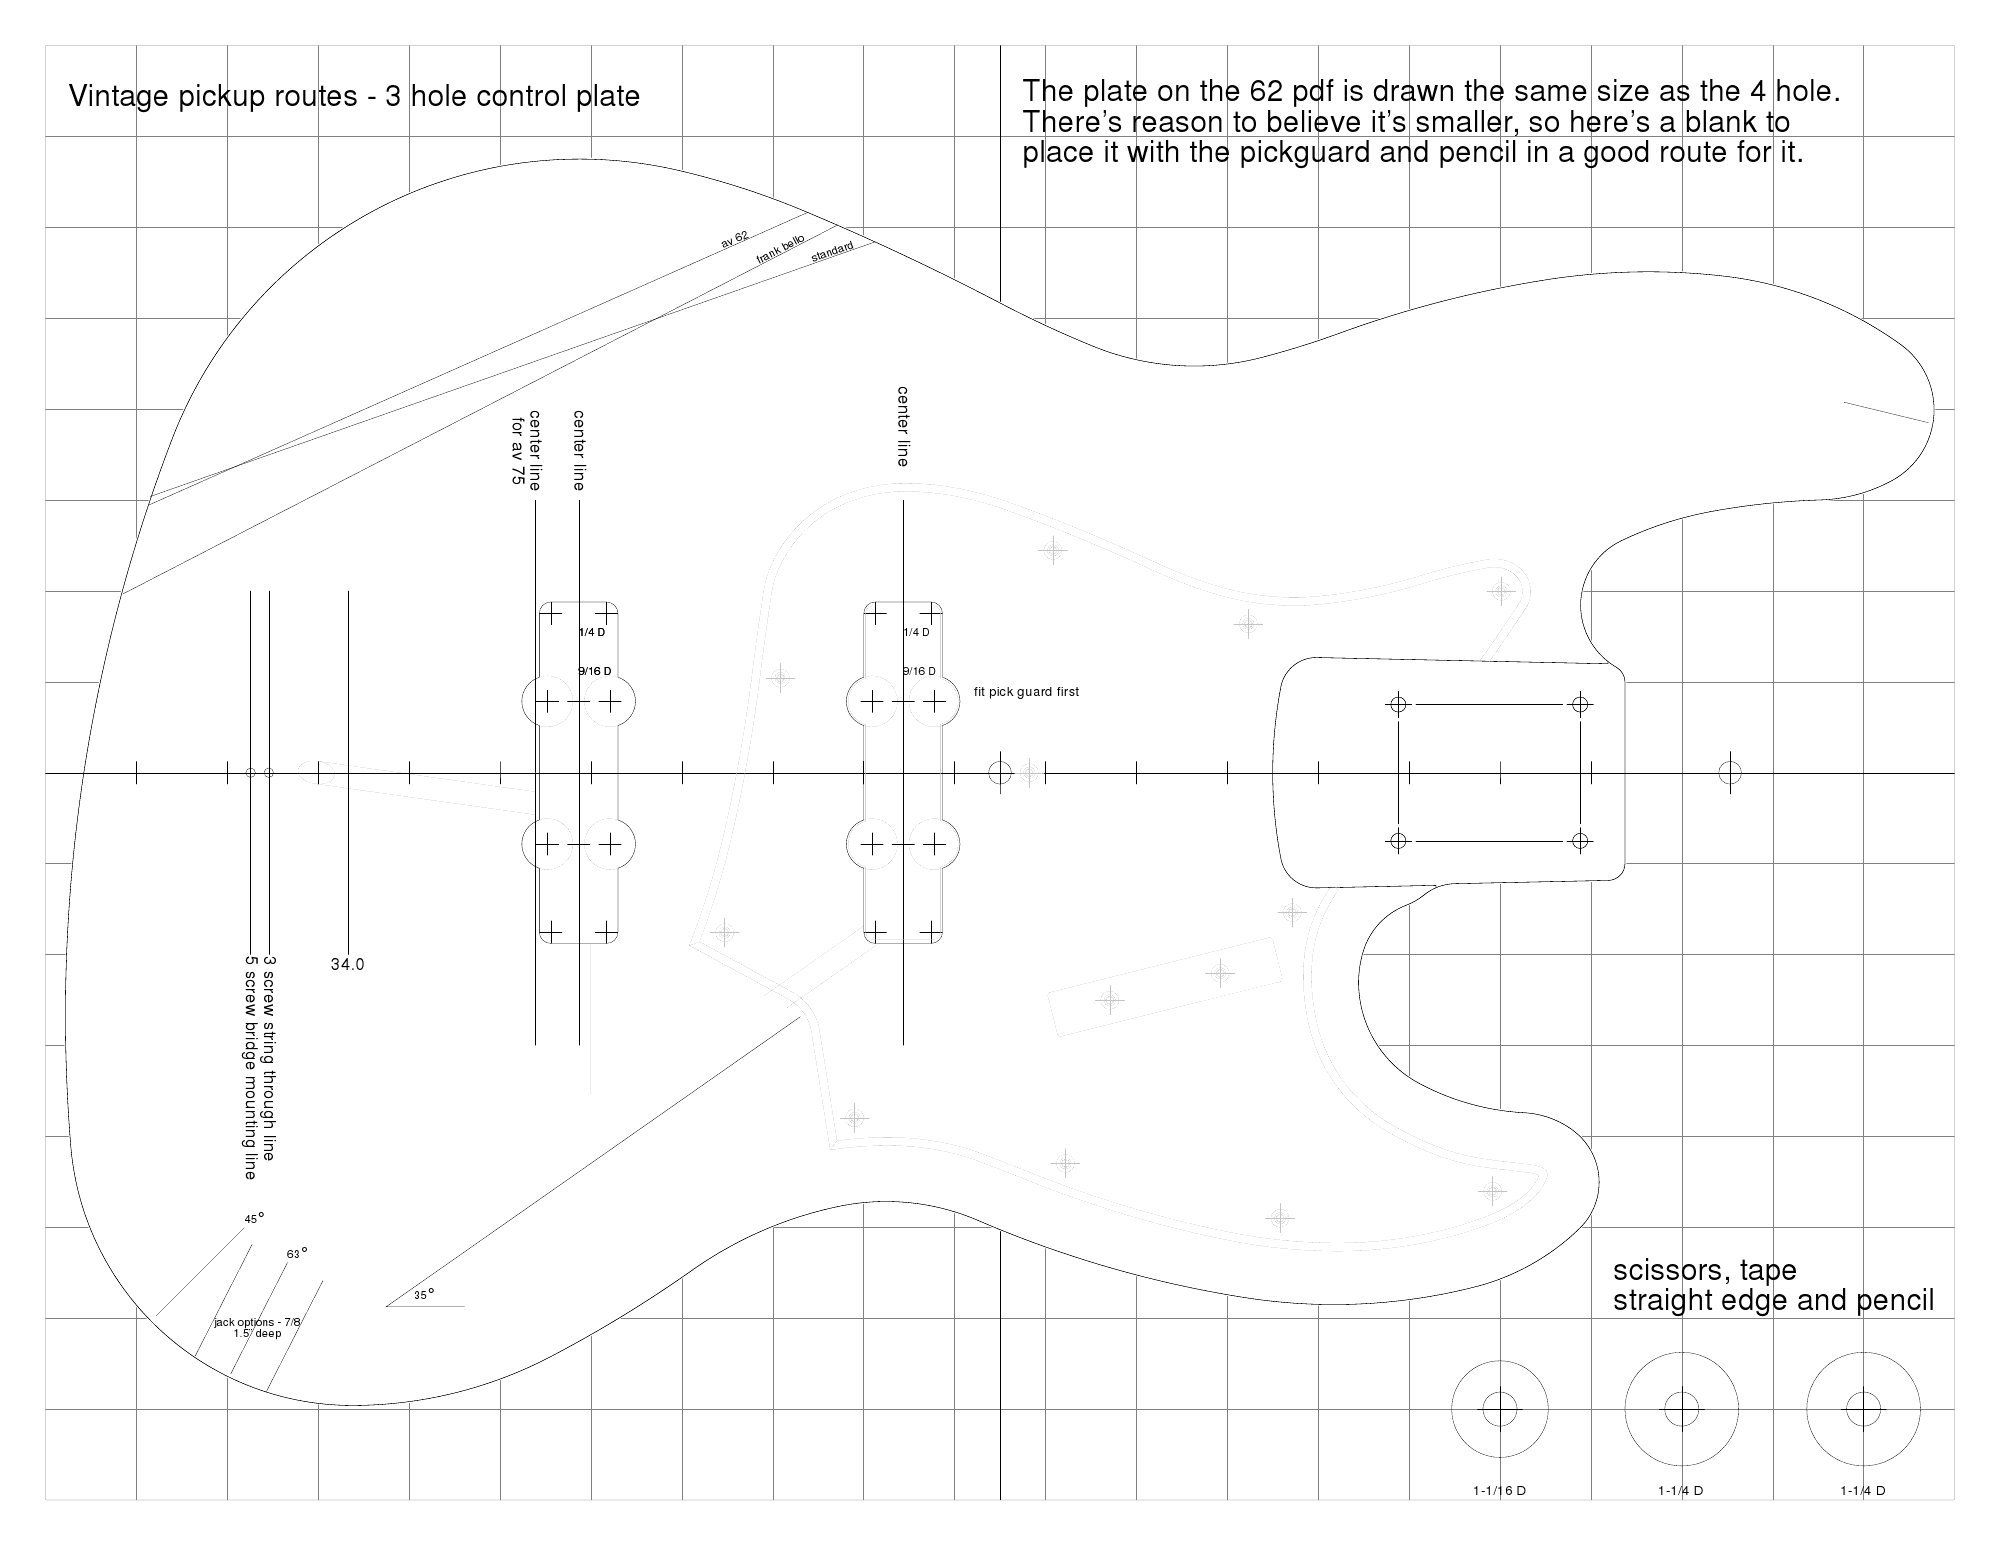 Erfreut Cnc Gitarrenvorlagen Bilder - Entry Level Resume Vorlagen ...